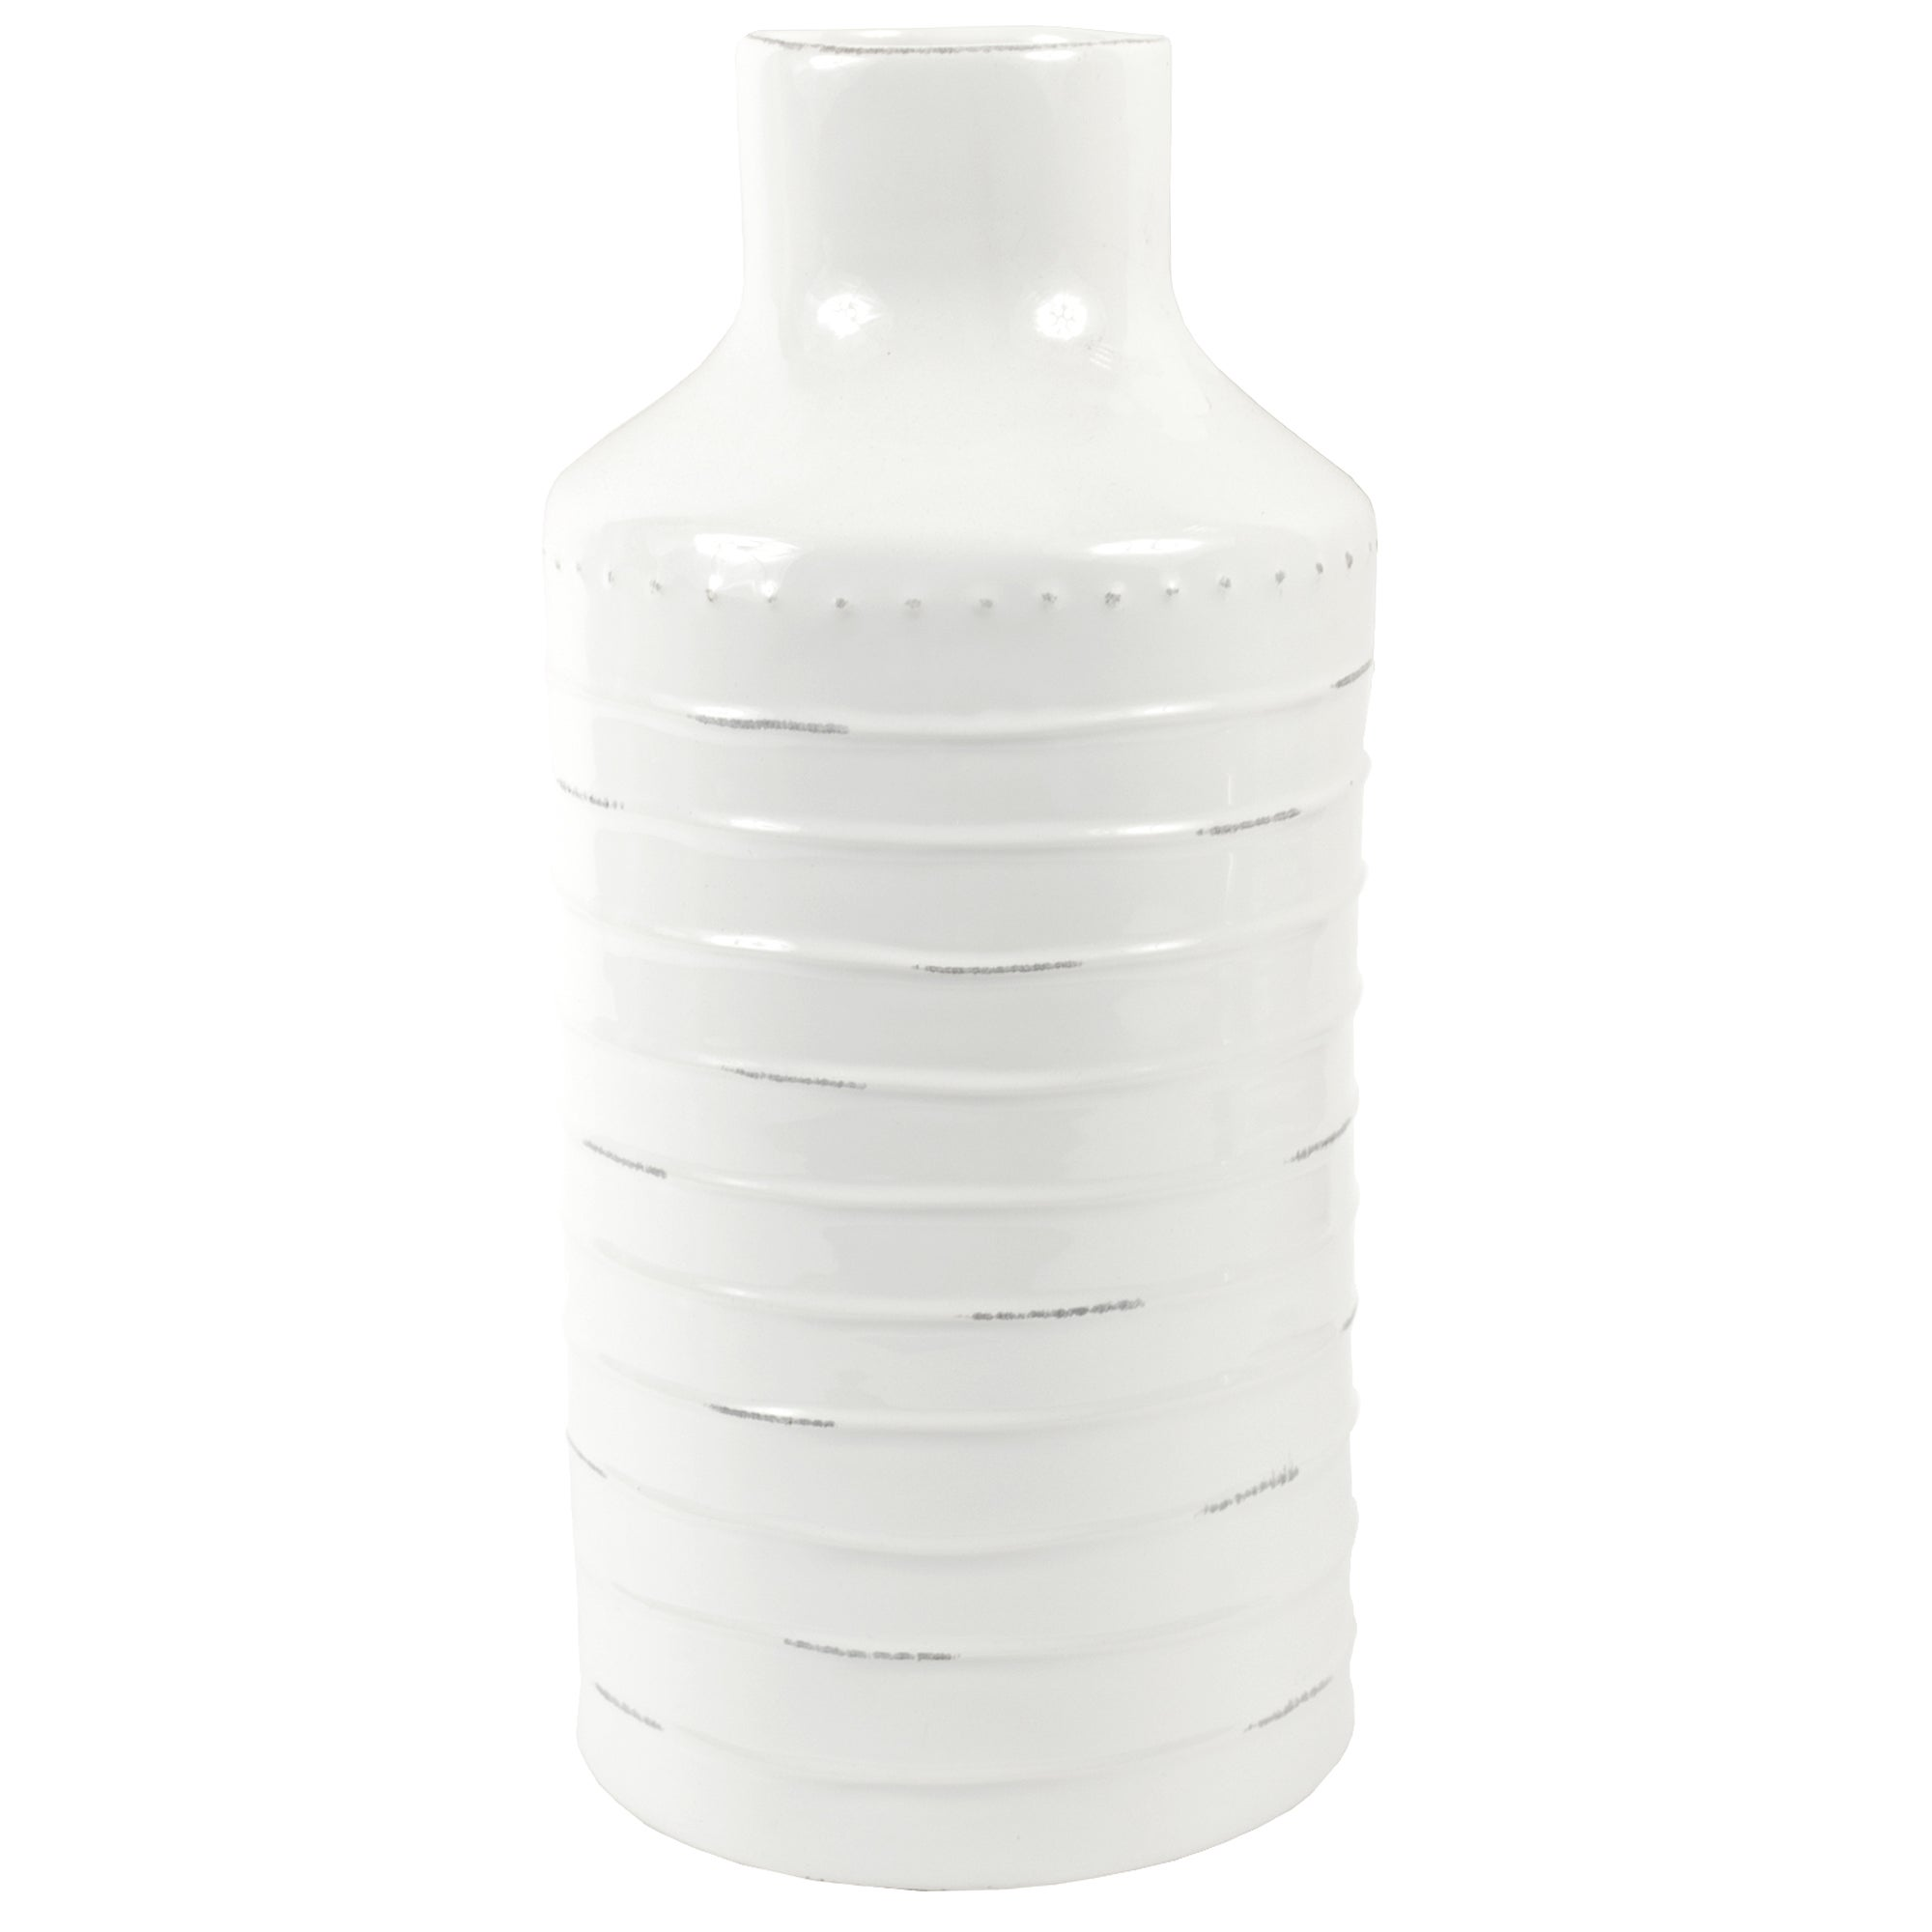 The Hamptons Collection White Large Ridged Bottle Vase